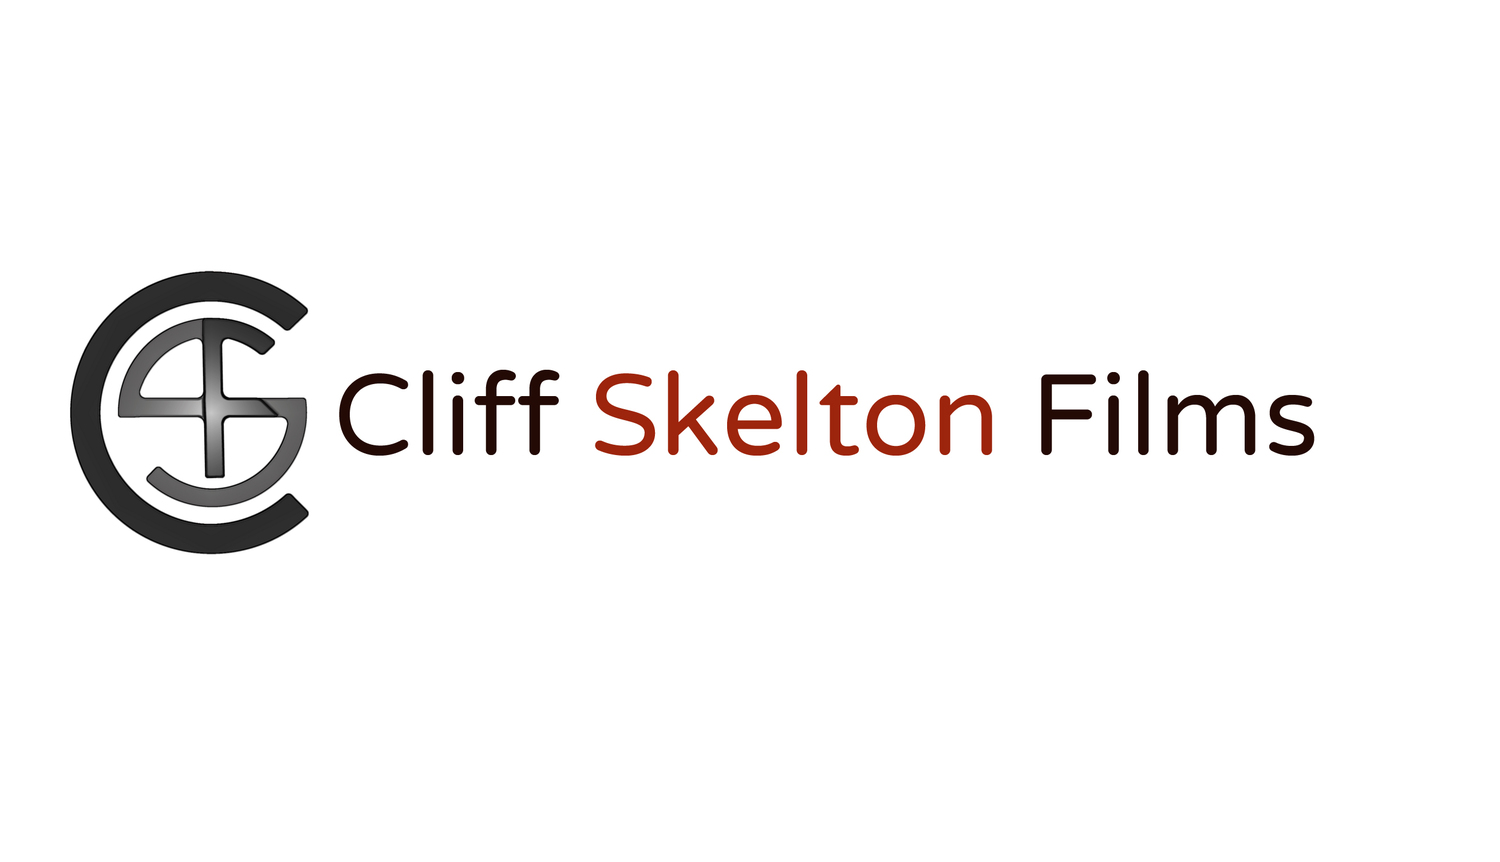 Cliff Skelton Films